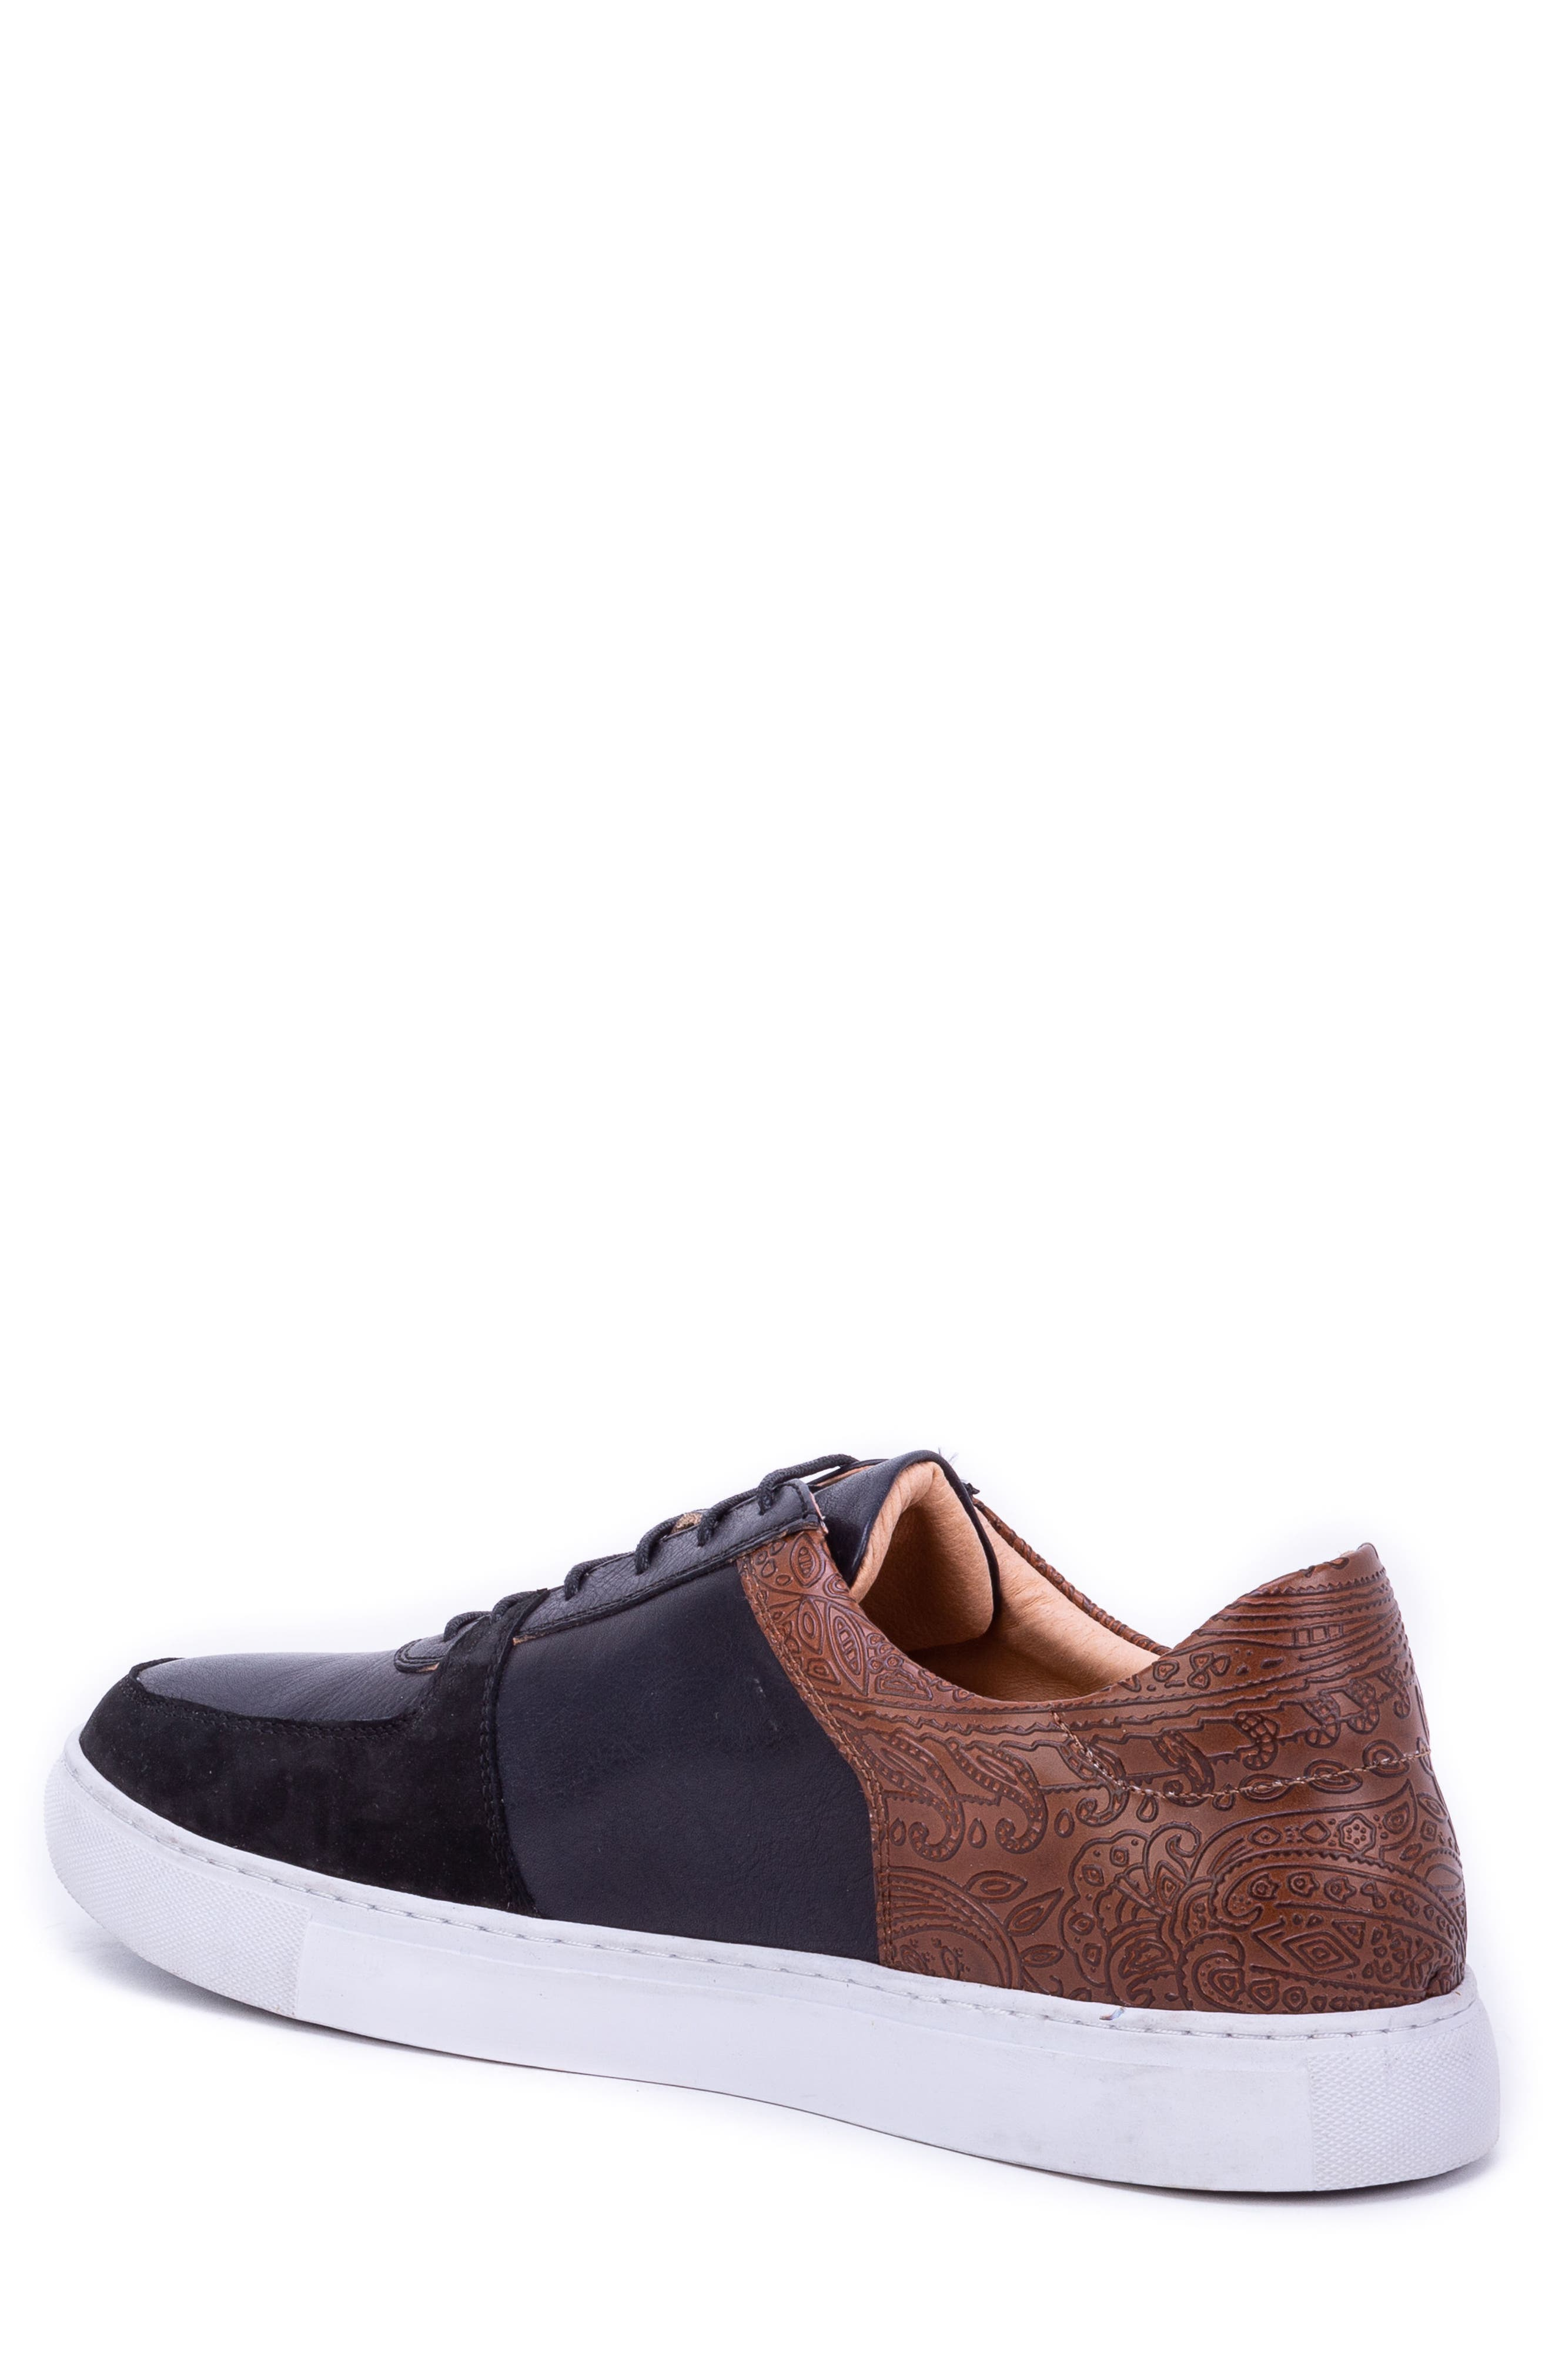 Chadwick Paisley Tooled Sneaker,                             Alternate thumbnail 2, color,                             BLACK LEATHER/ SUEDE